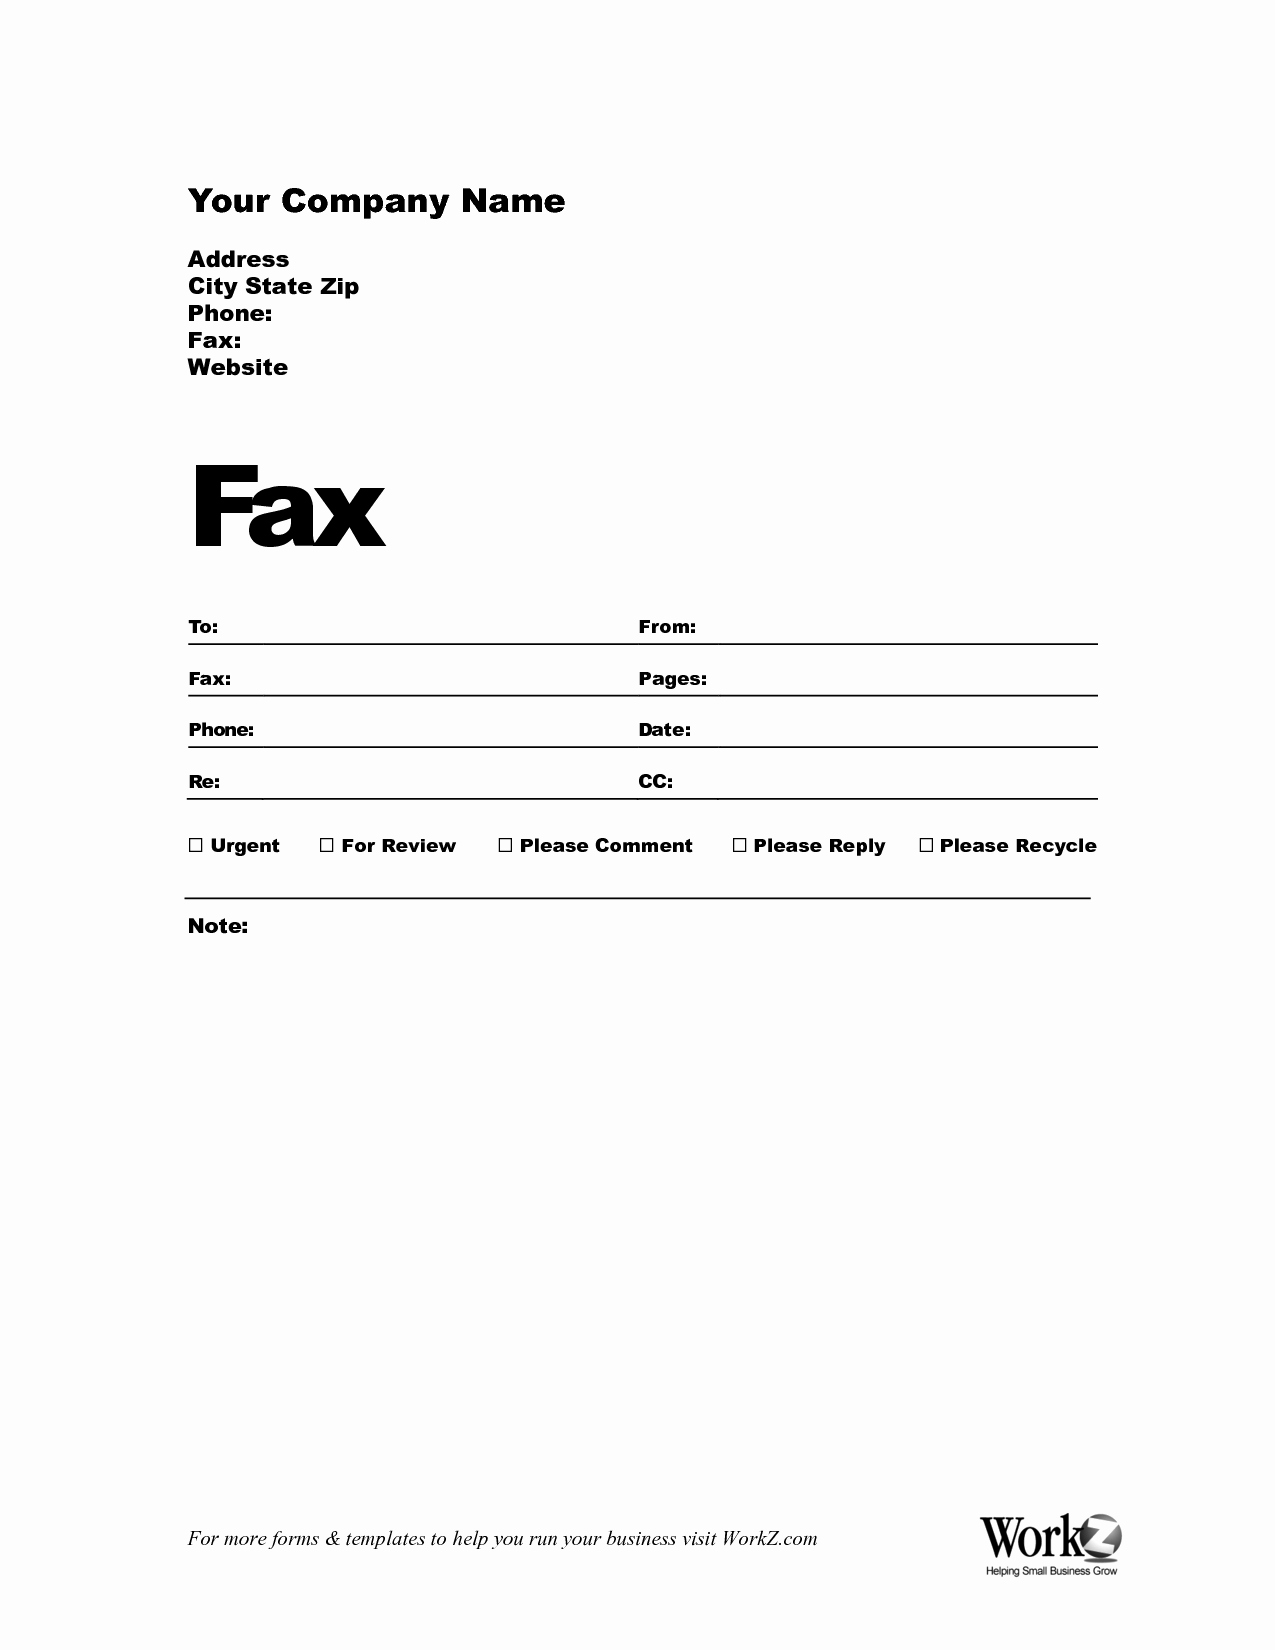 Fax Cover Sheet Sample Template Elegant Free Fax Cover Sheet Template Bamboodownunder